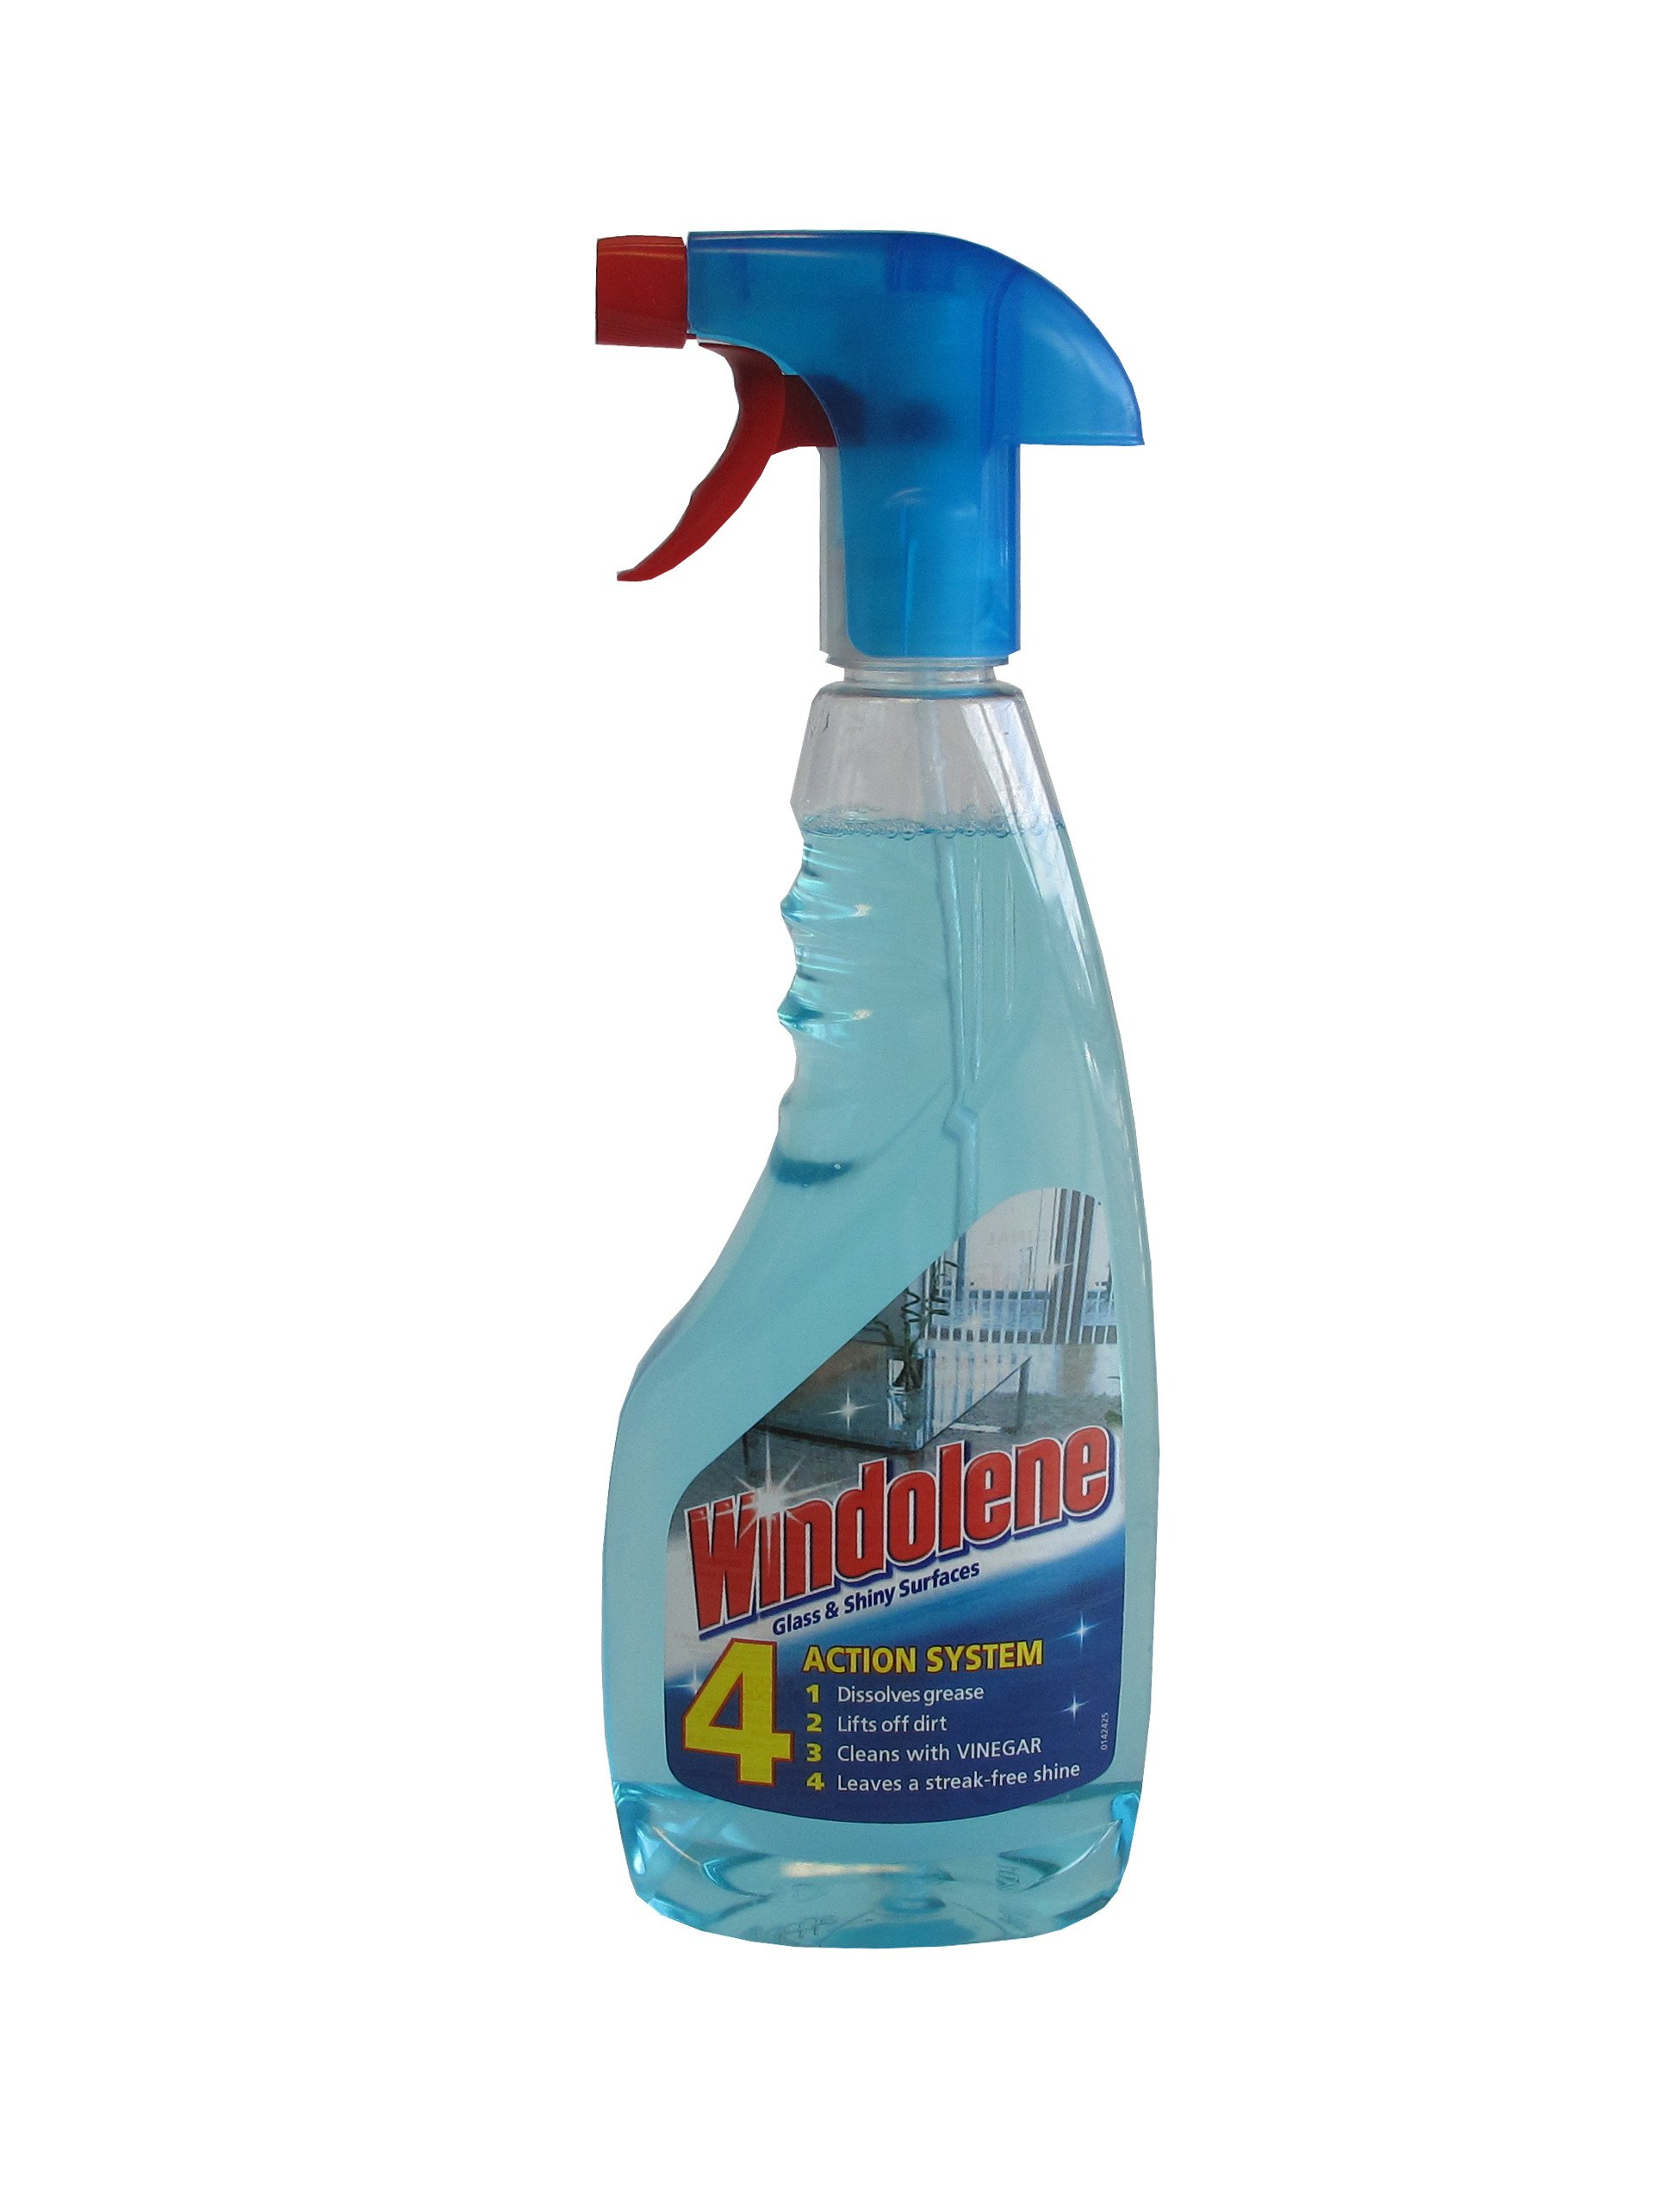 Windolene Glass Surface Cleaner 500ml Janitorial Direct Ltd